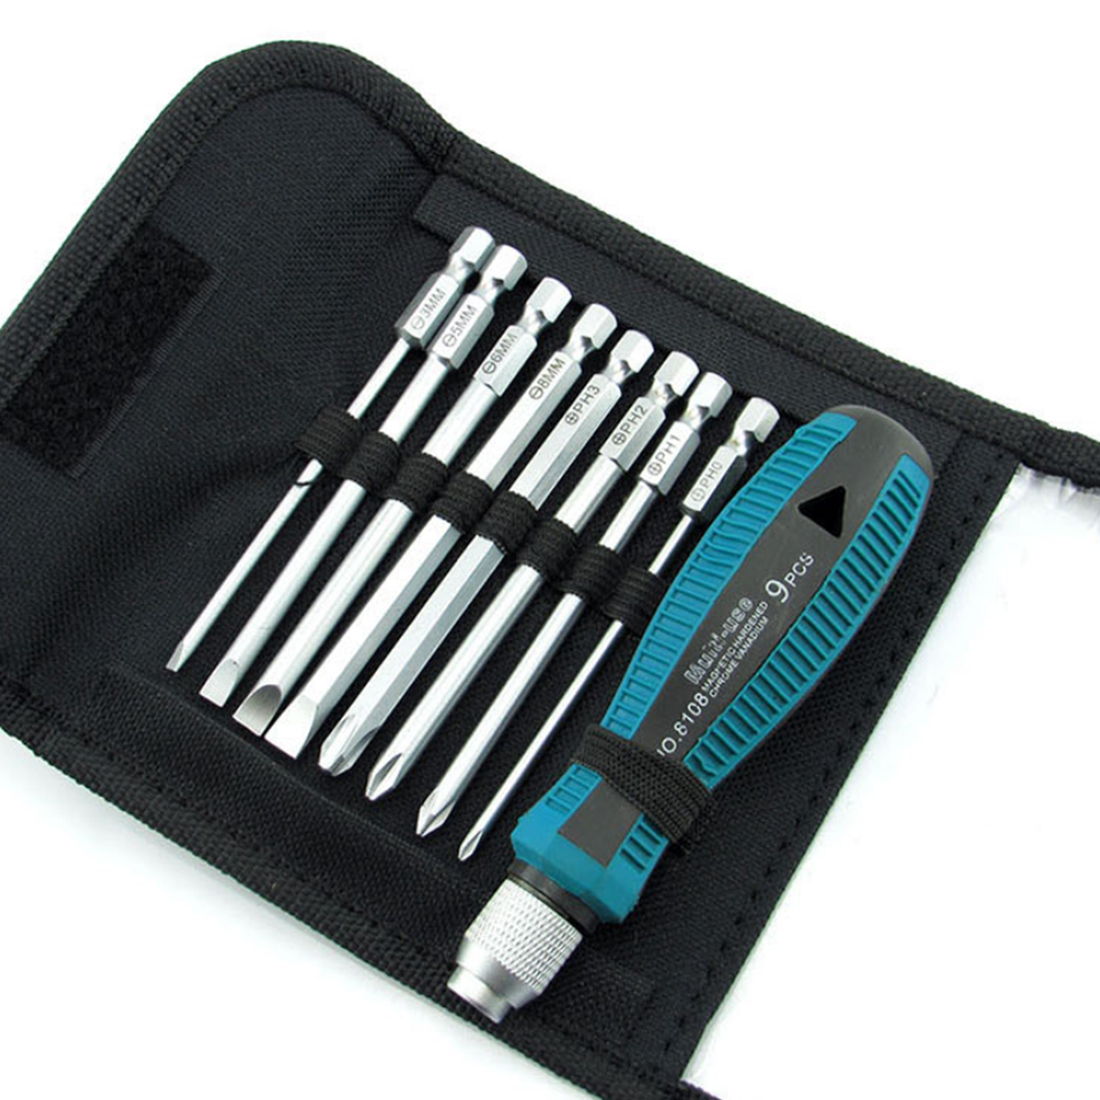 High 9pcs/set Precision Screwdriver Set 9 IN 1 Screwdrivers Kit Bag 8 Insert Bits+1pcs Rubber Handle Top Quality